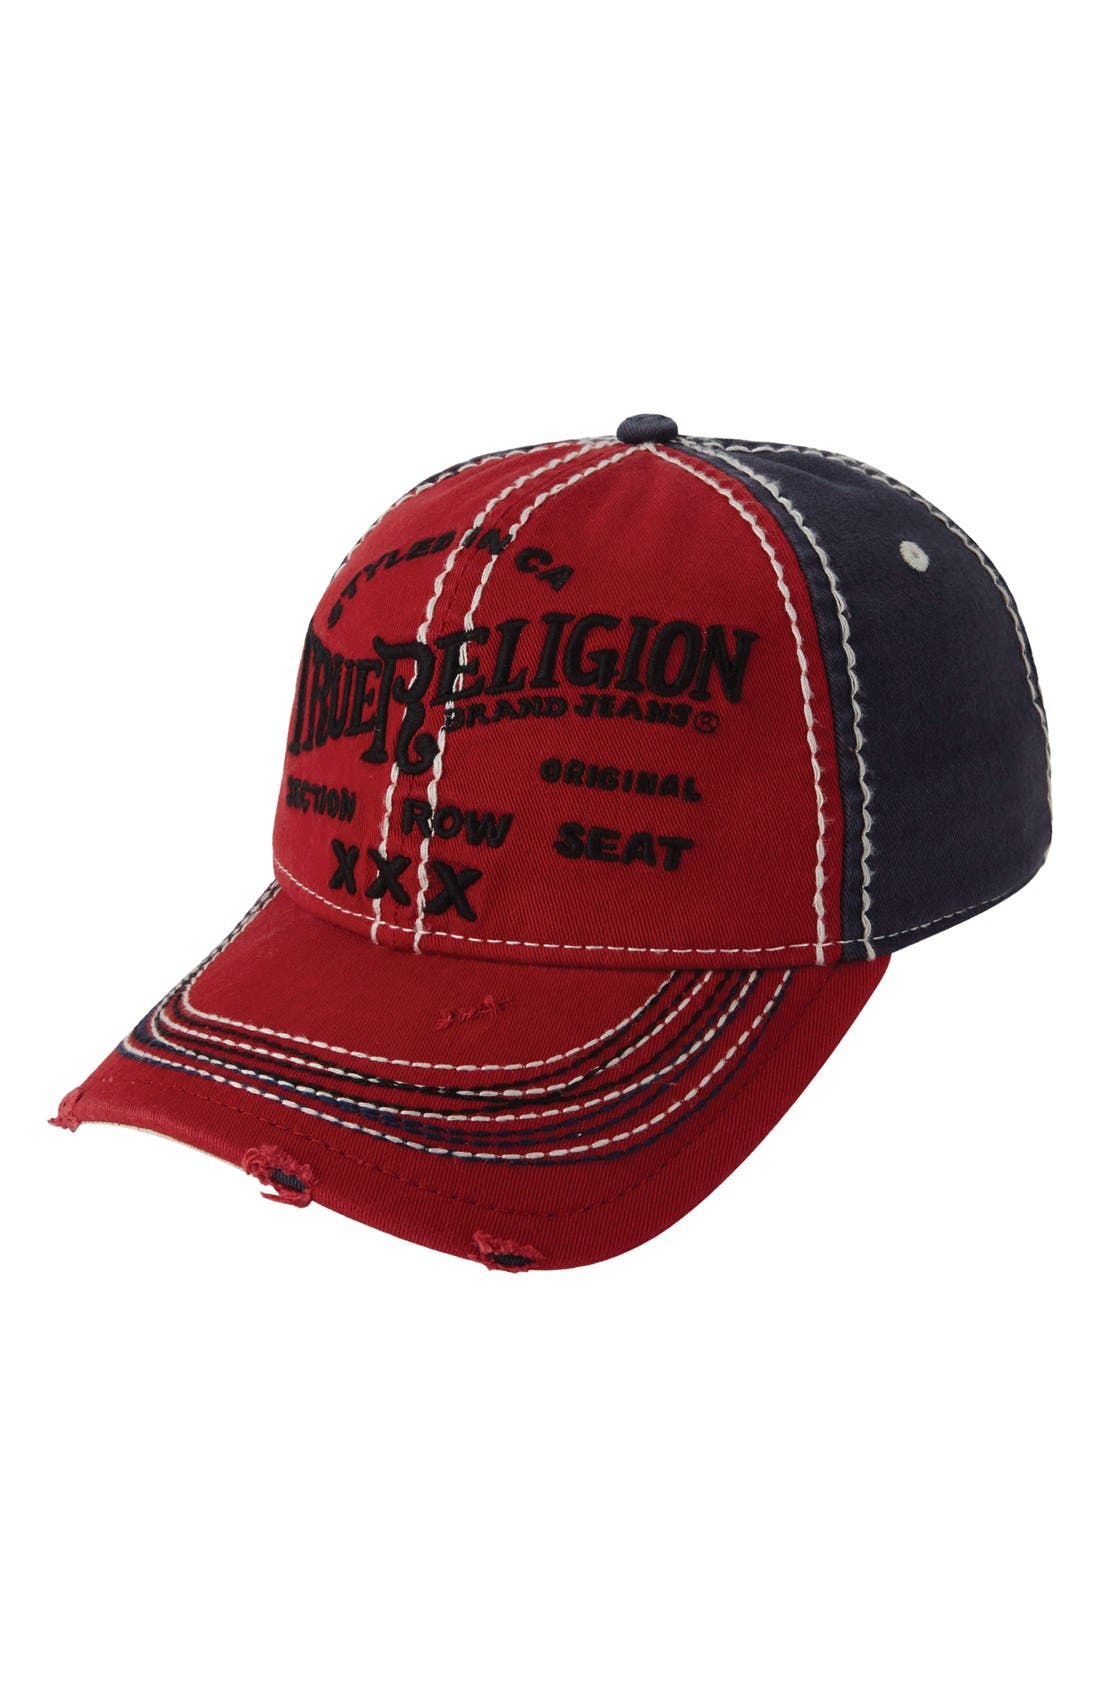 True Religion Brand Jeans 'Triple X' Baseball Cap